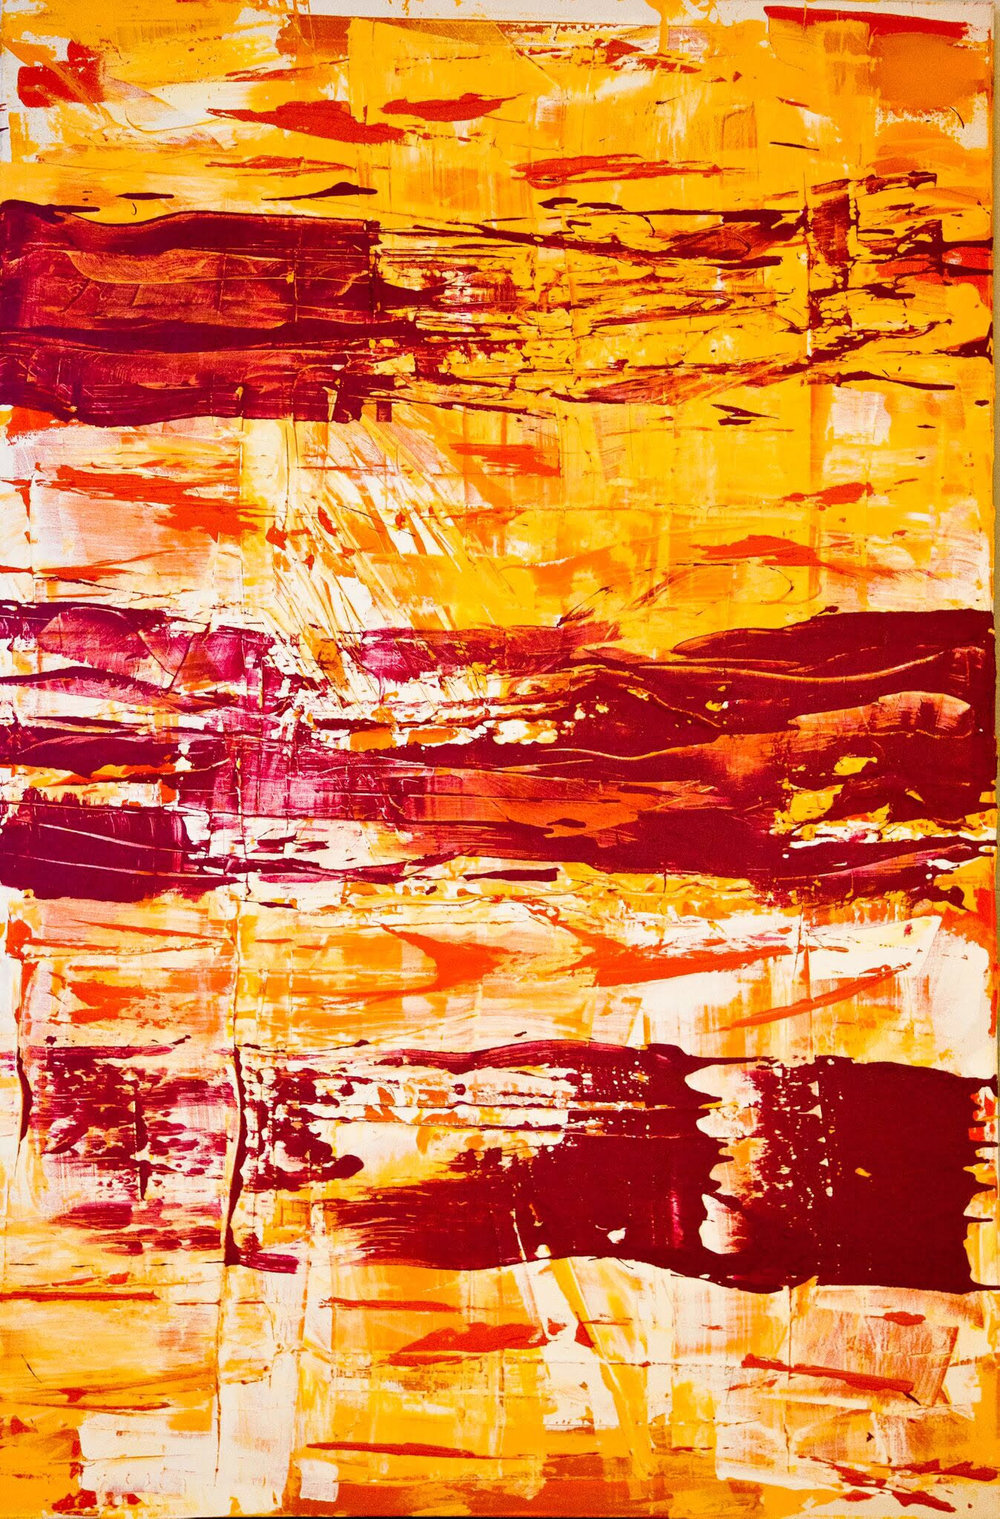 impetus series / acrylic on canvas / 84 in. x 48 in.